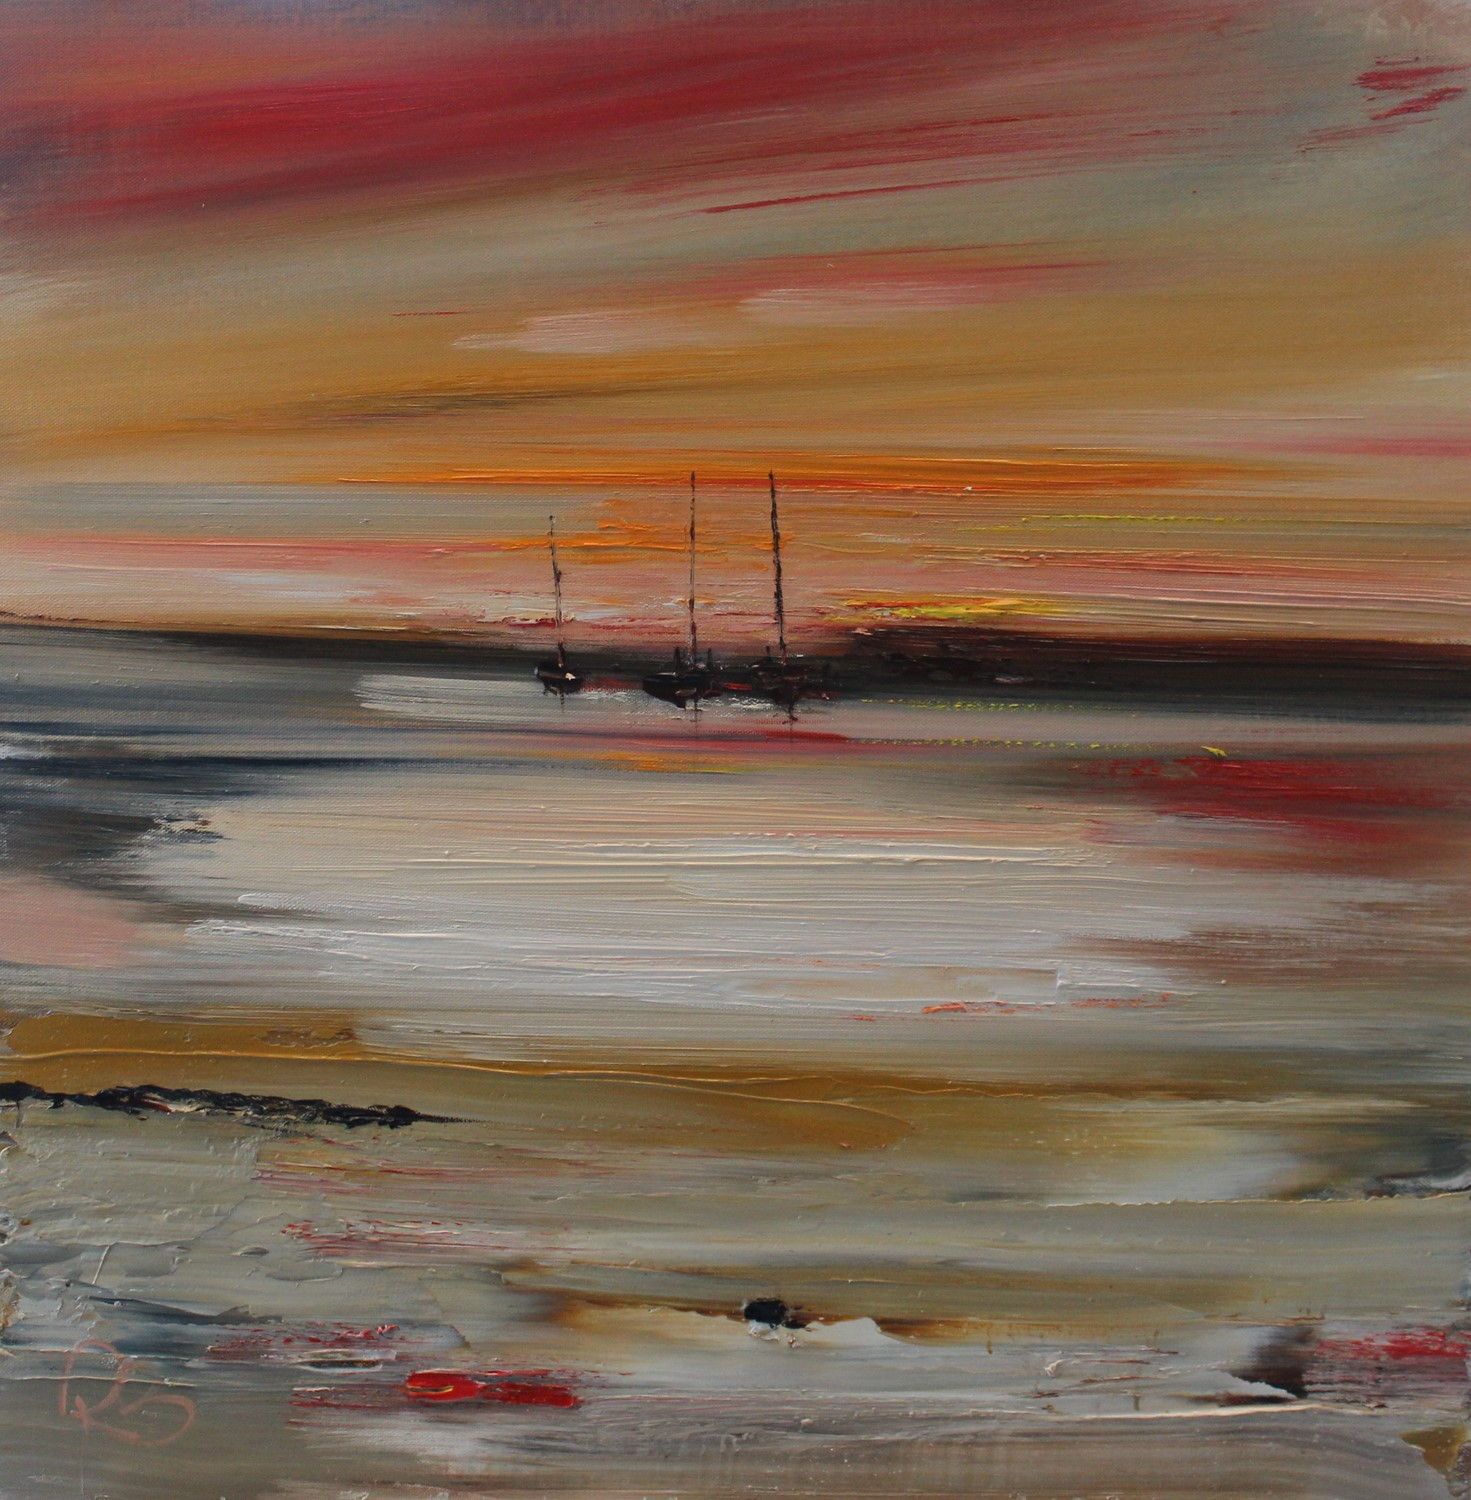 'Distant Yachts' by artist Rosanne Barr